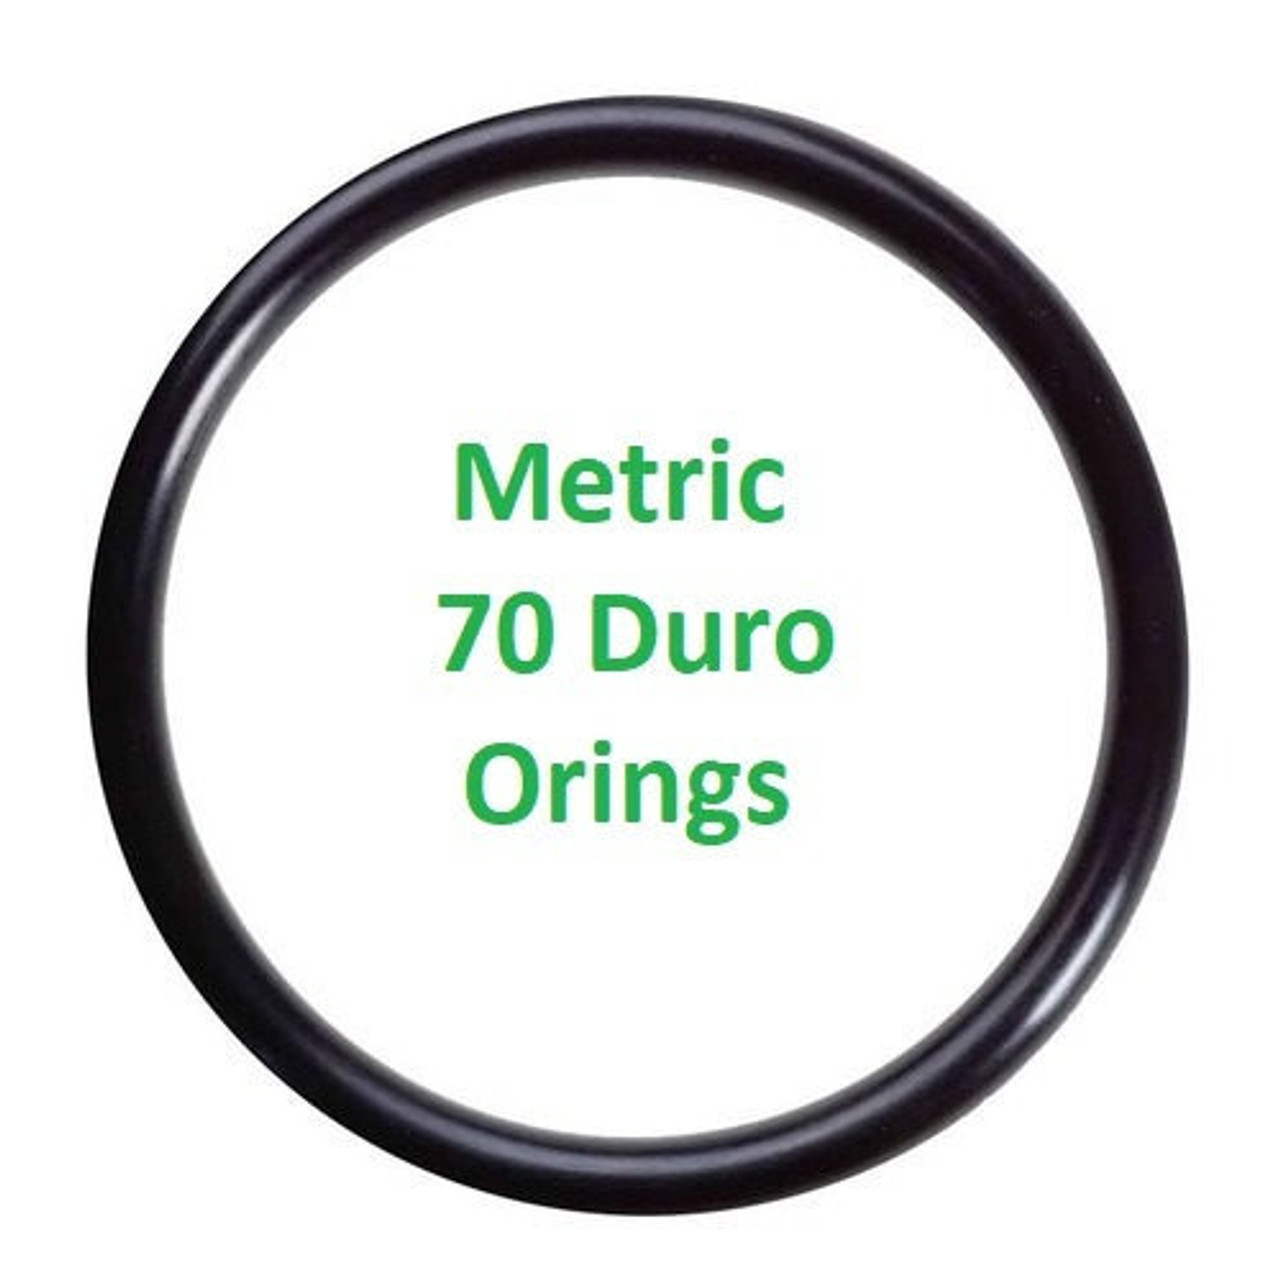 Metric Buna  O-rings 6 x 1.2mm  Price for 25 pcs